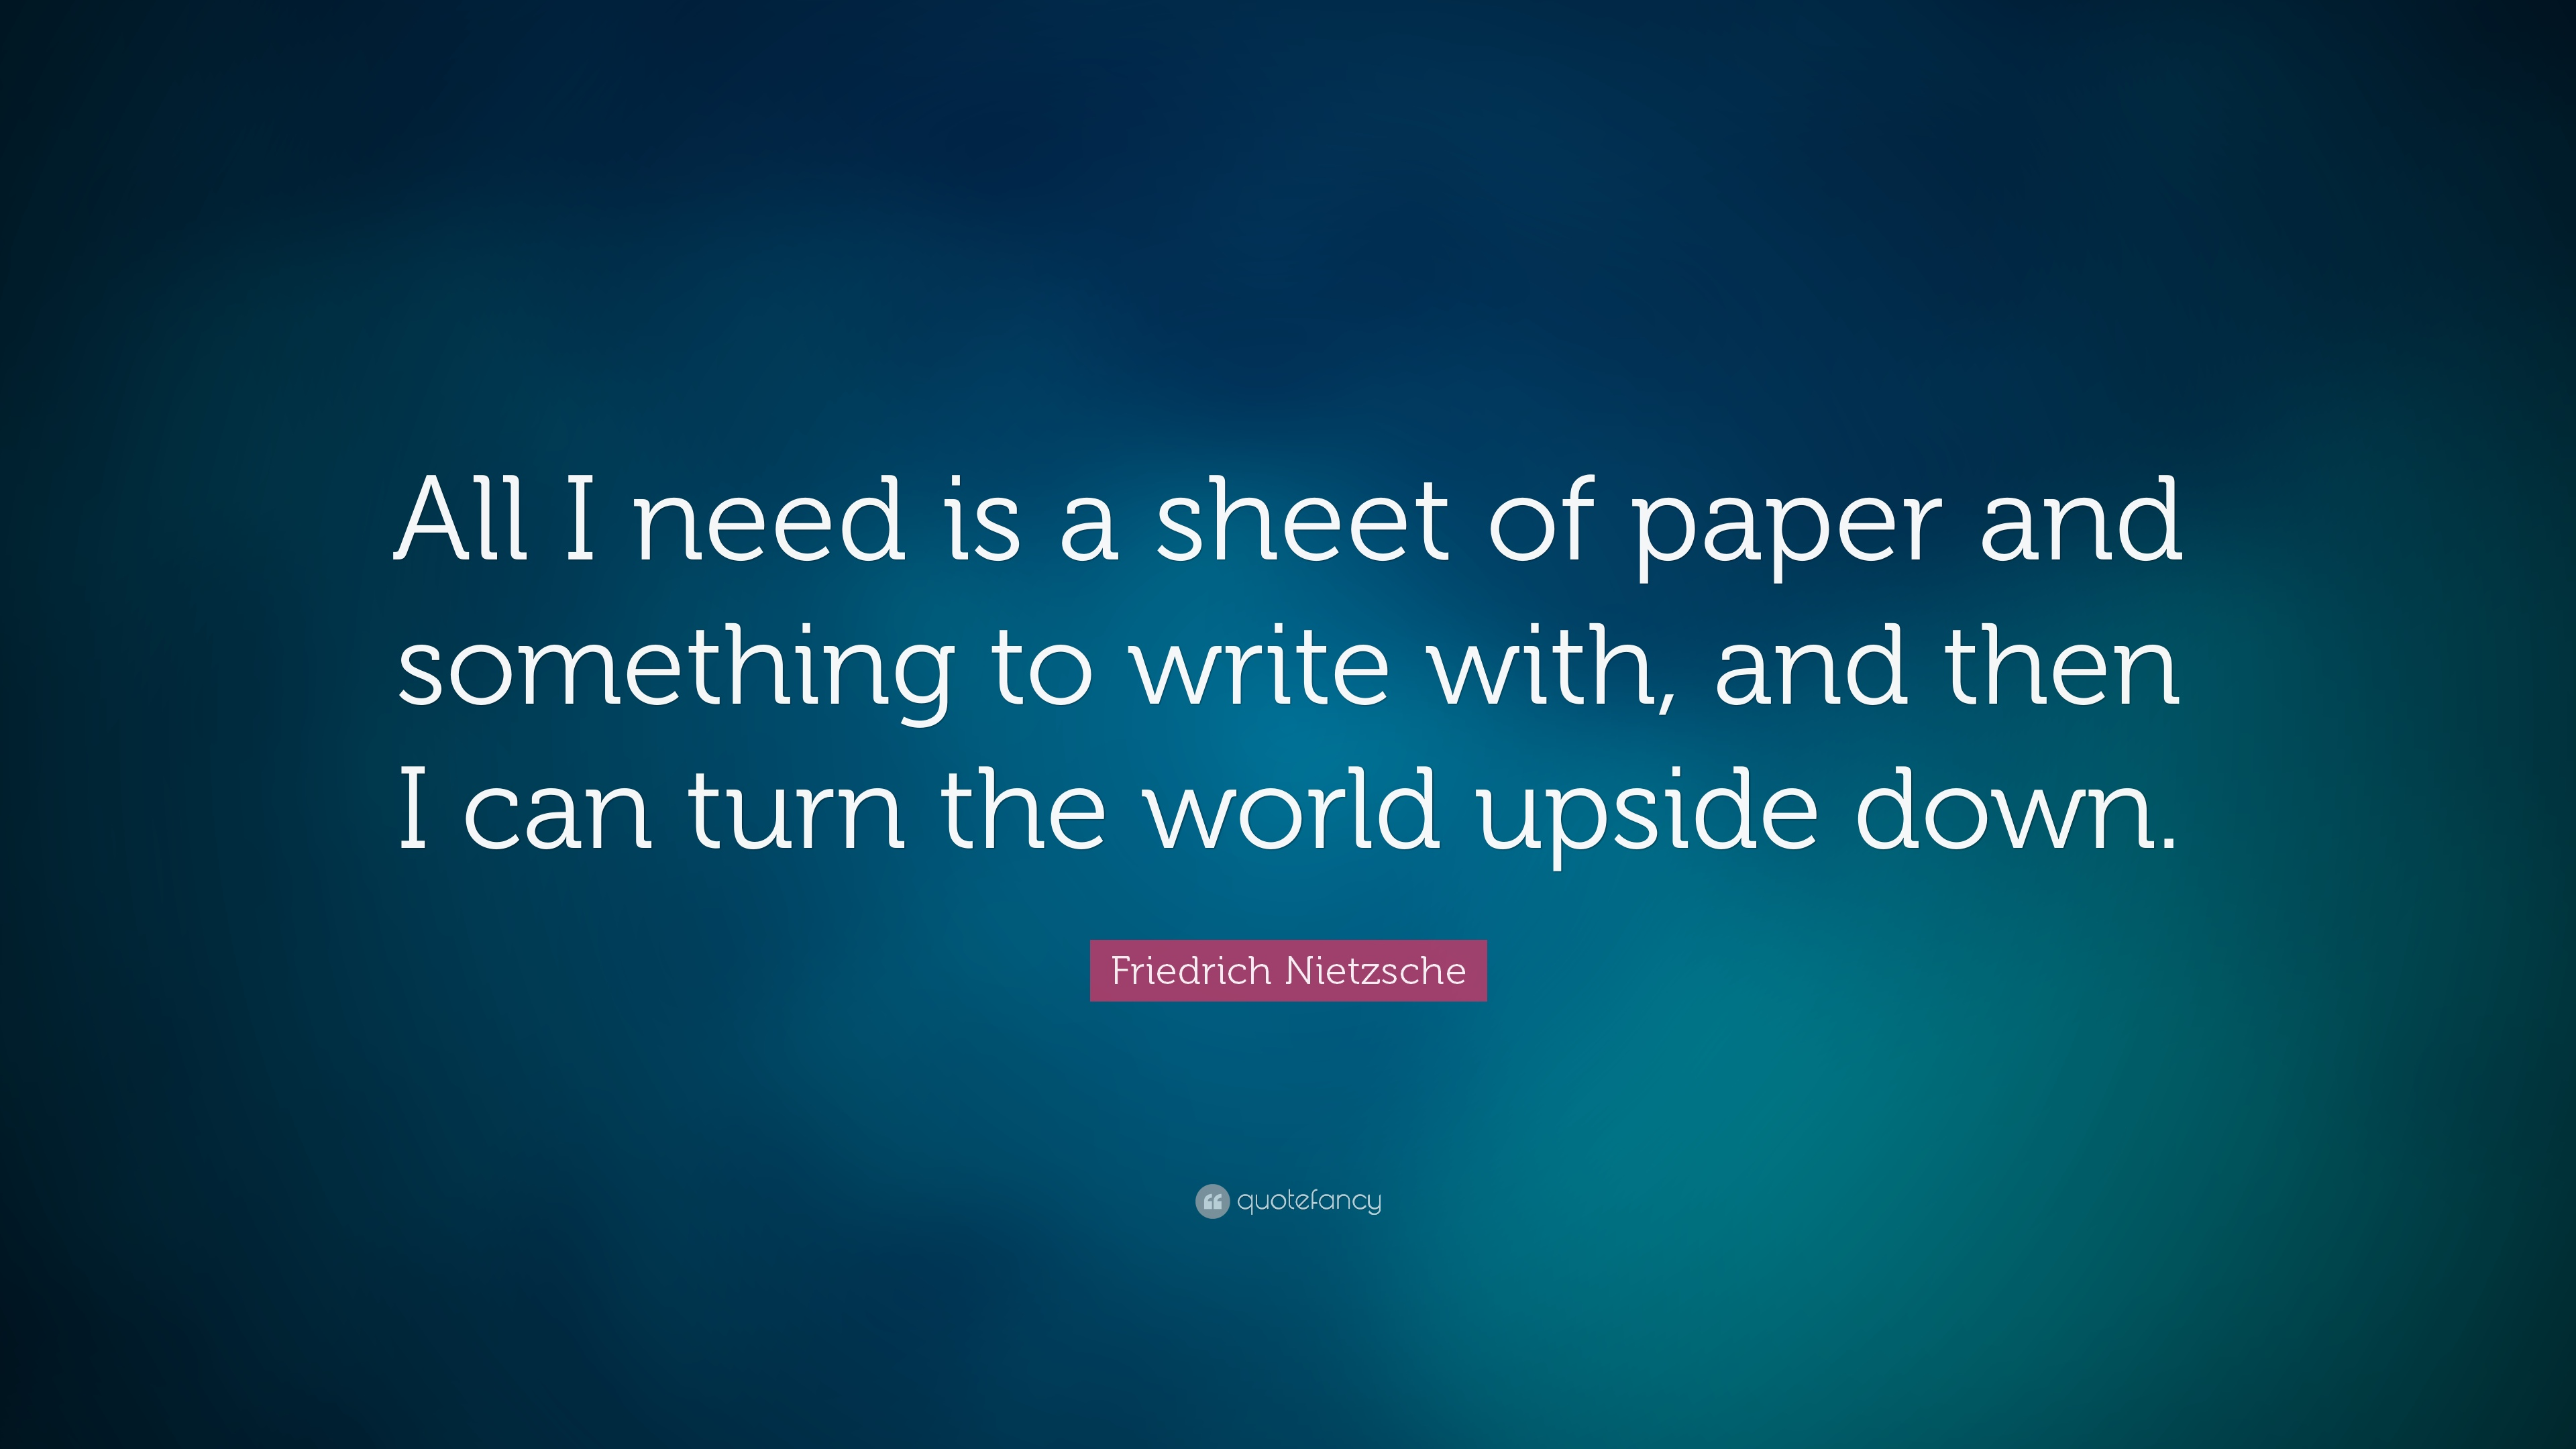 friedrich nietzsche quote all i need is a sheet of paper and